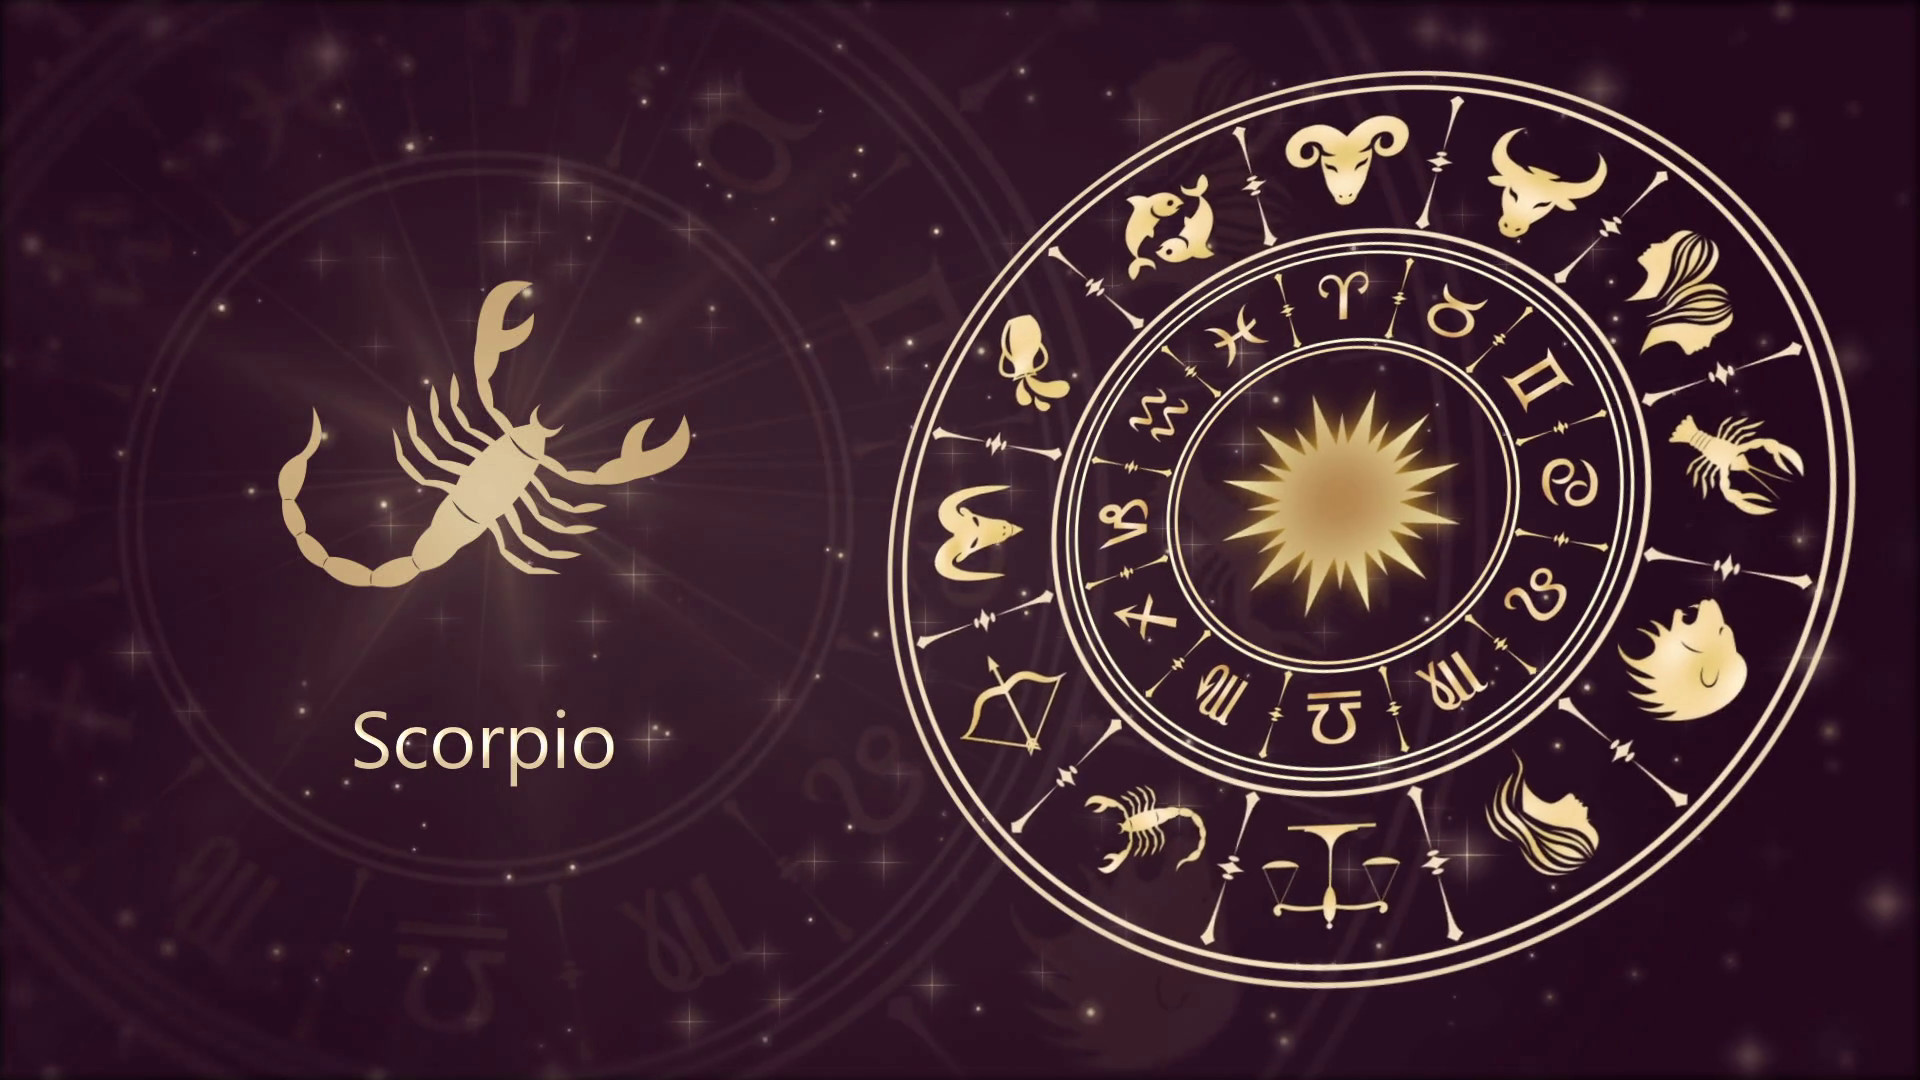 Res: 1920x1080, Zodiac sign Scorpio and horoscope wheel Stock Video Footage - Videoblocks